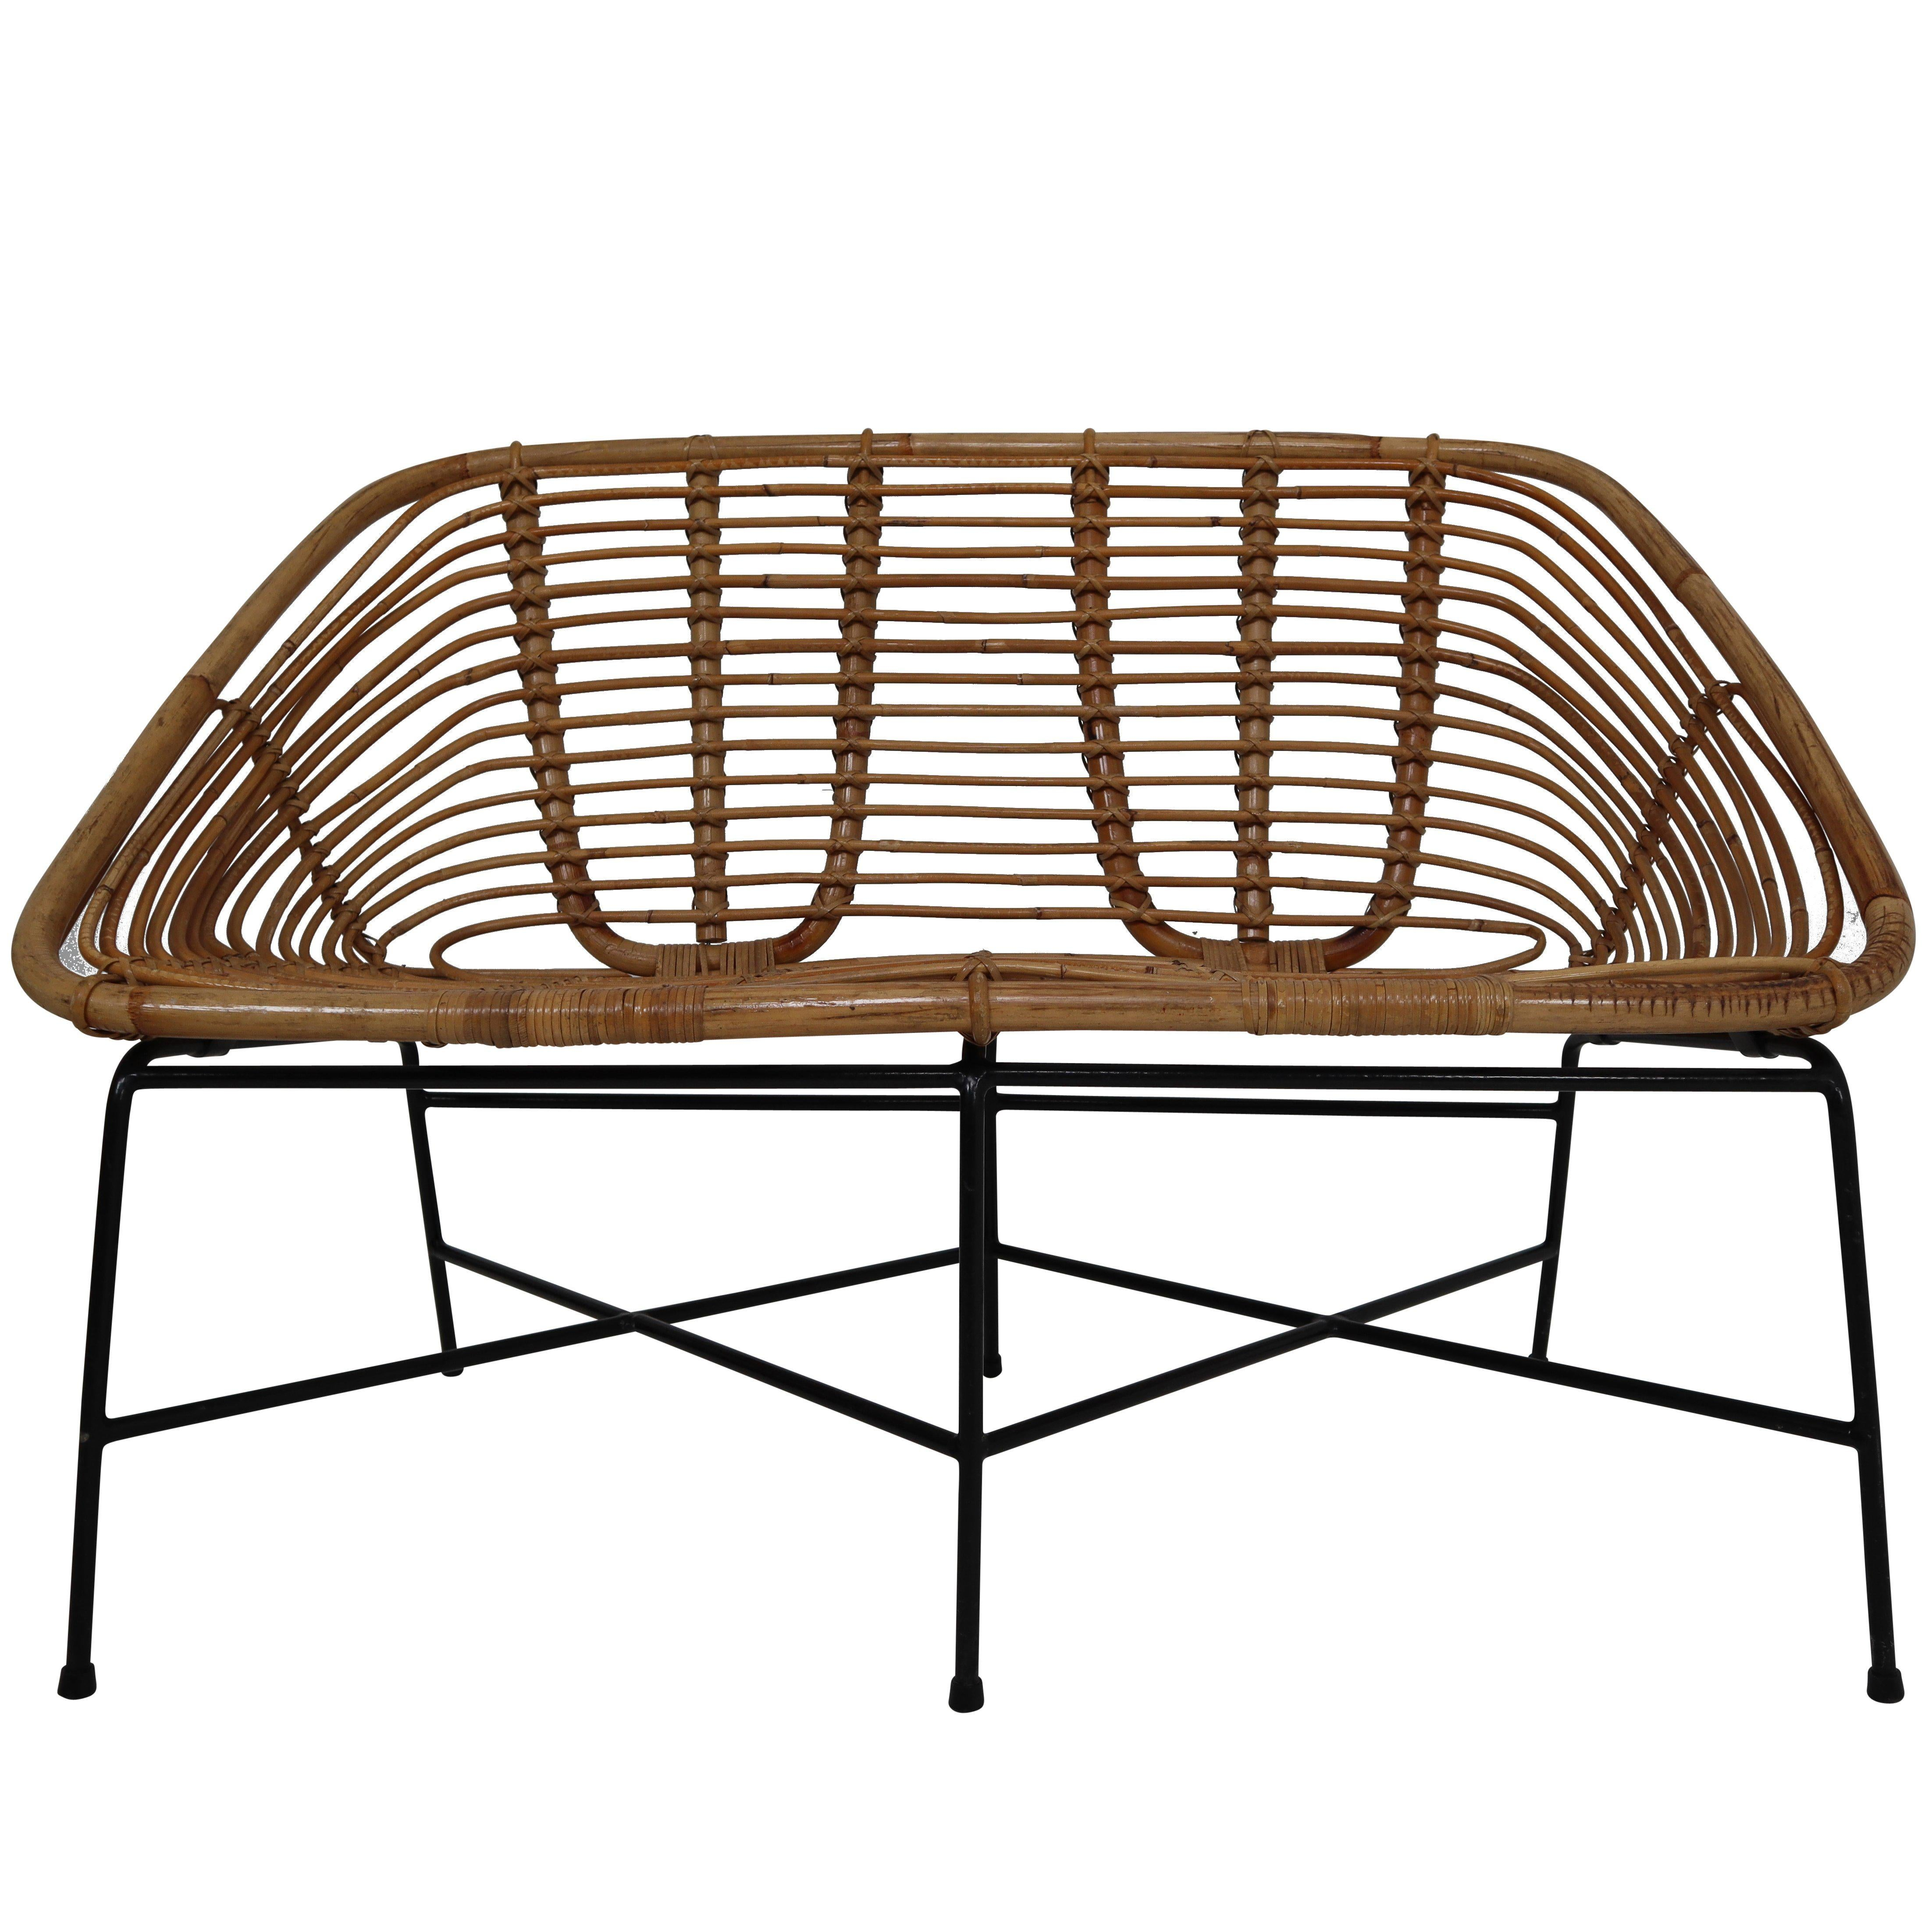 Midcentury Rattan, Wicker And Iron Settee, Patio Bench, Italy, 1960s For  Sale